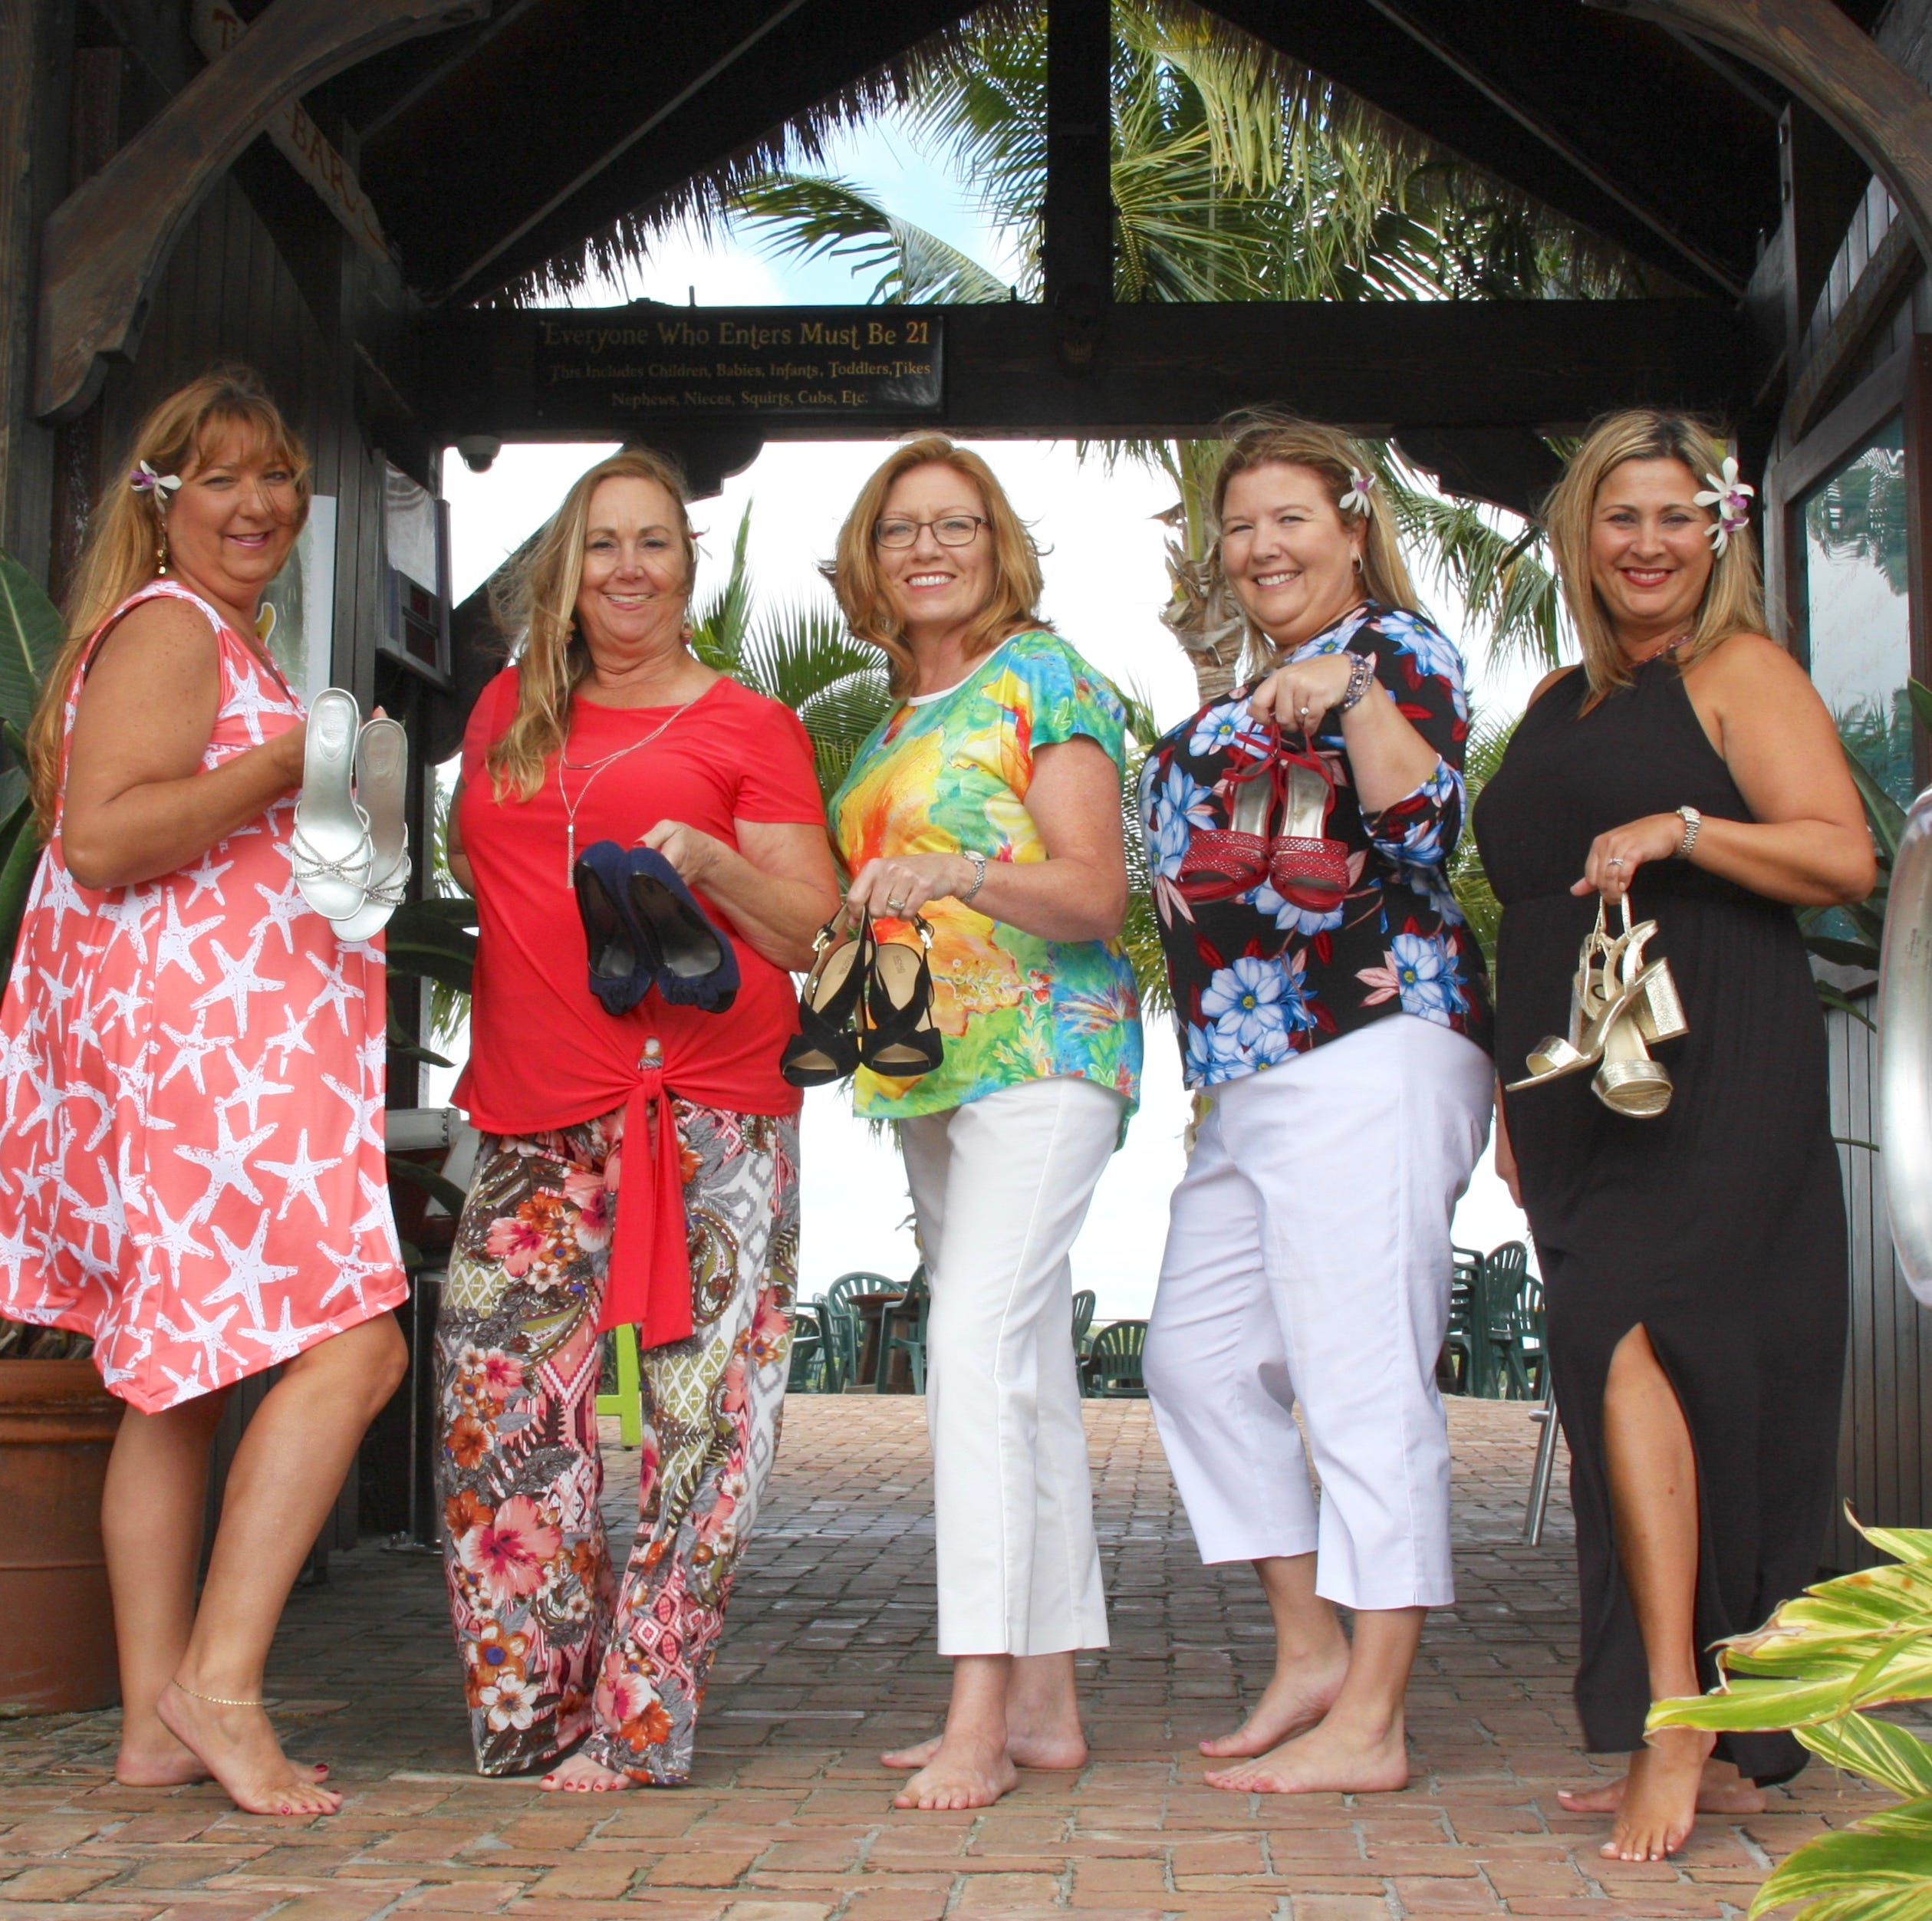 Port St. Lucie Business Women kick up 'Hawaiian Heels' for April 6 fashion show fundraiser